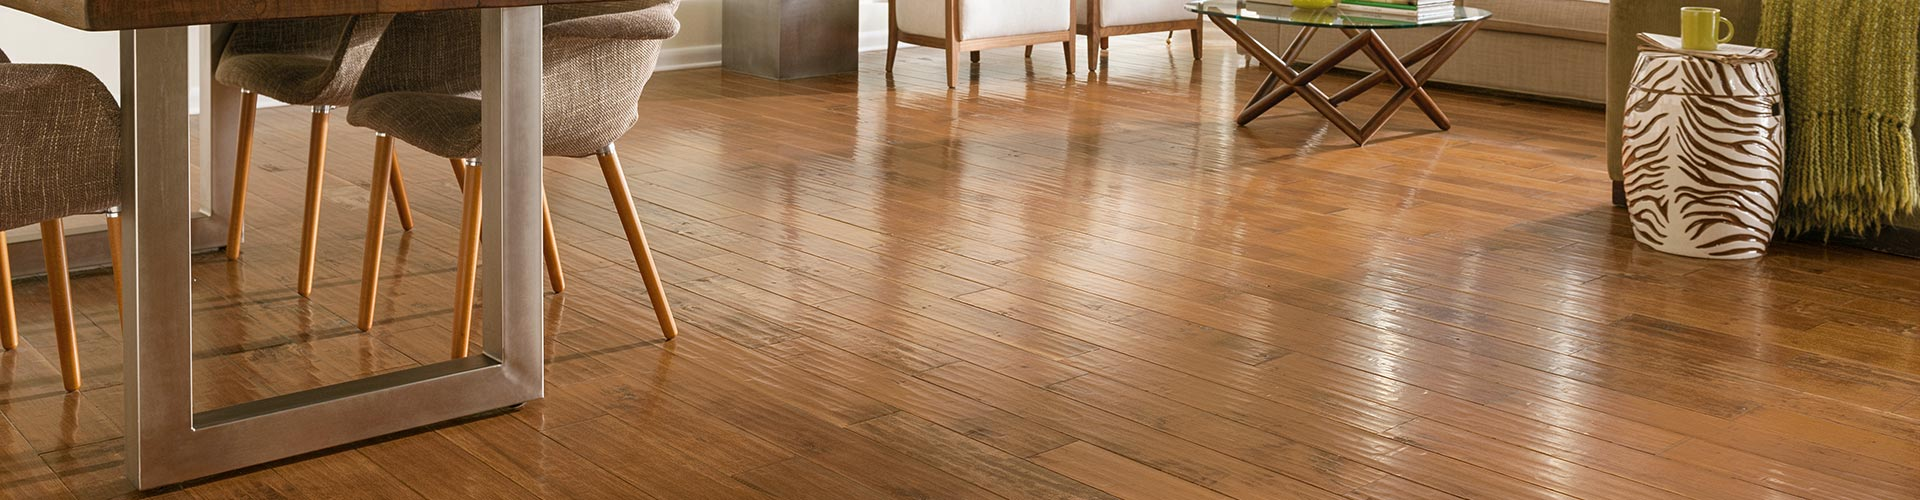 sawgrass floors wood flooring in broward